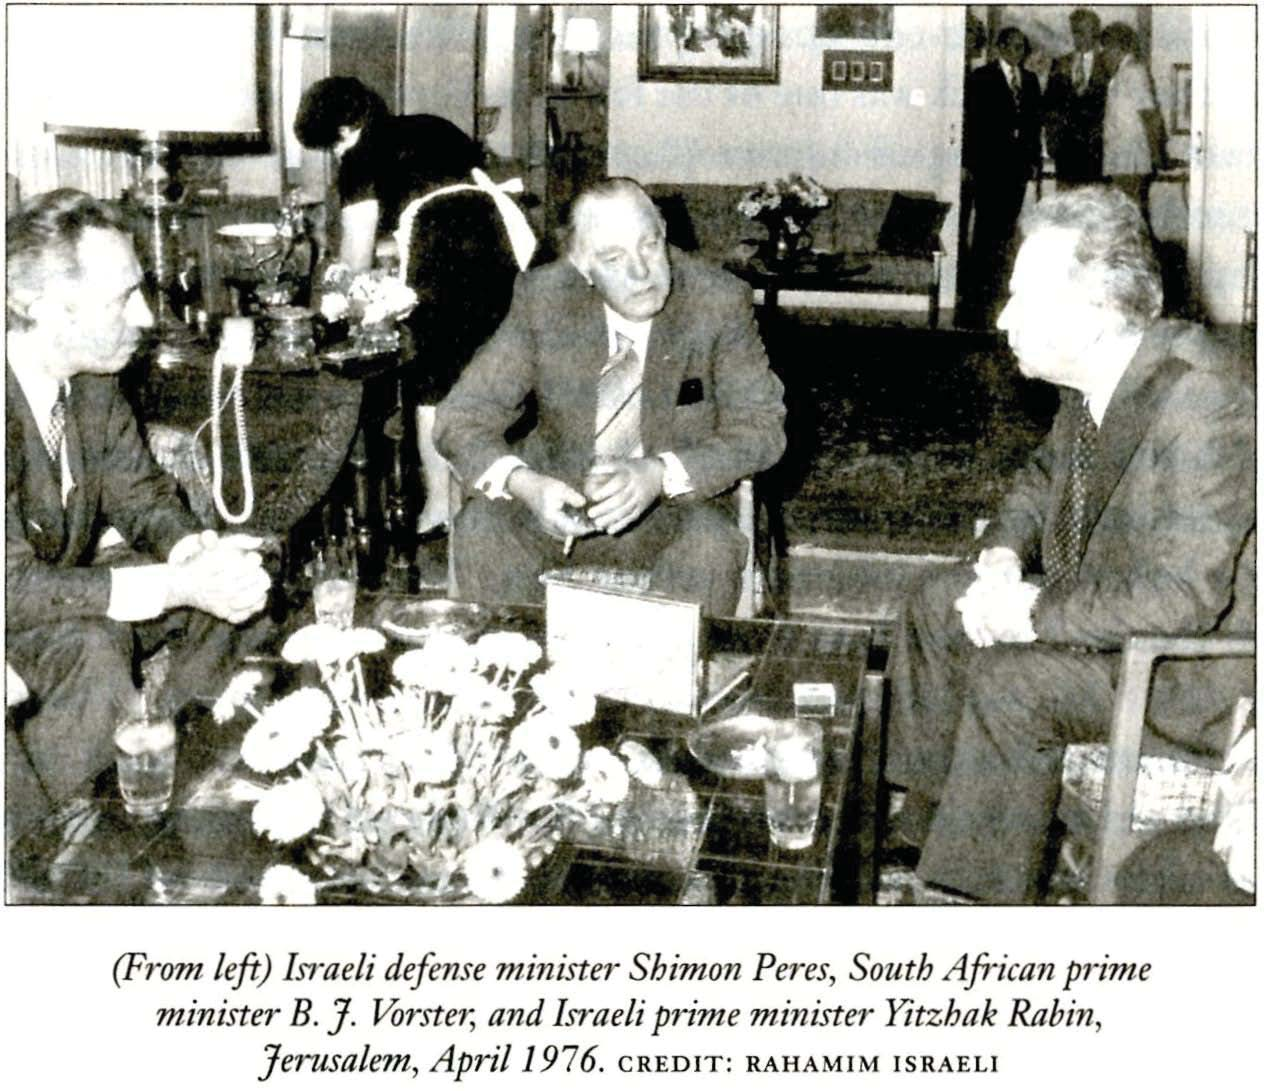 The events surrounding the apartheid in africa and its relation to israel